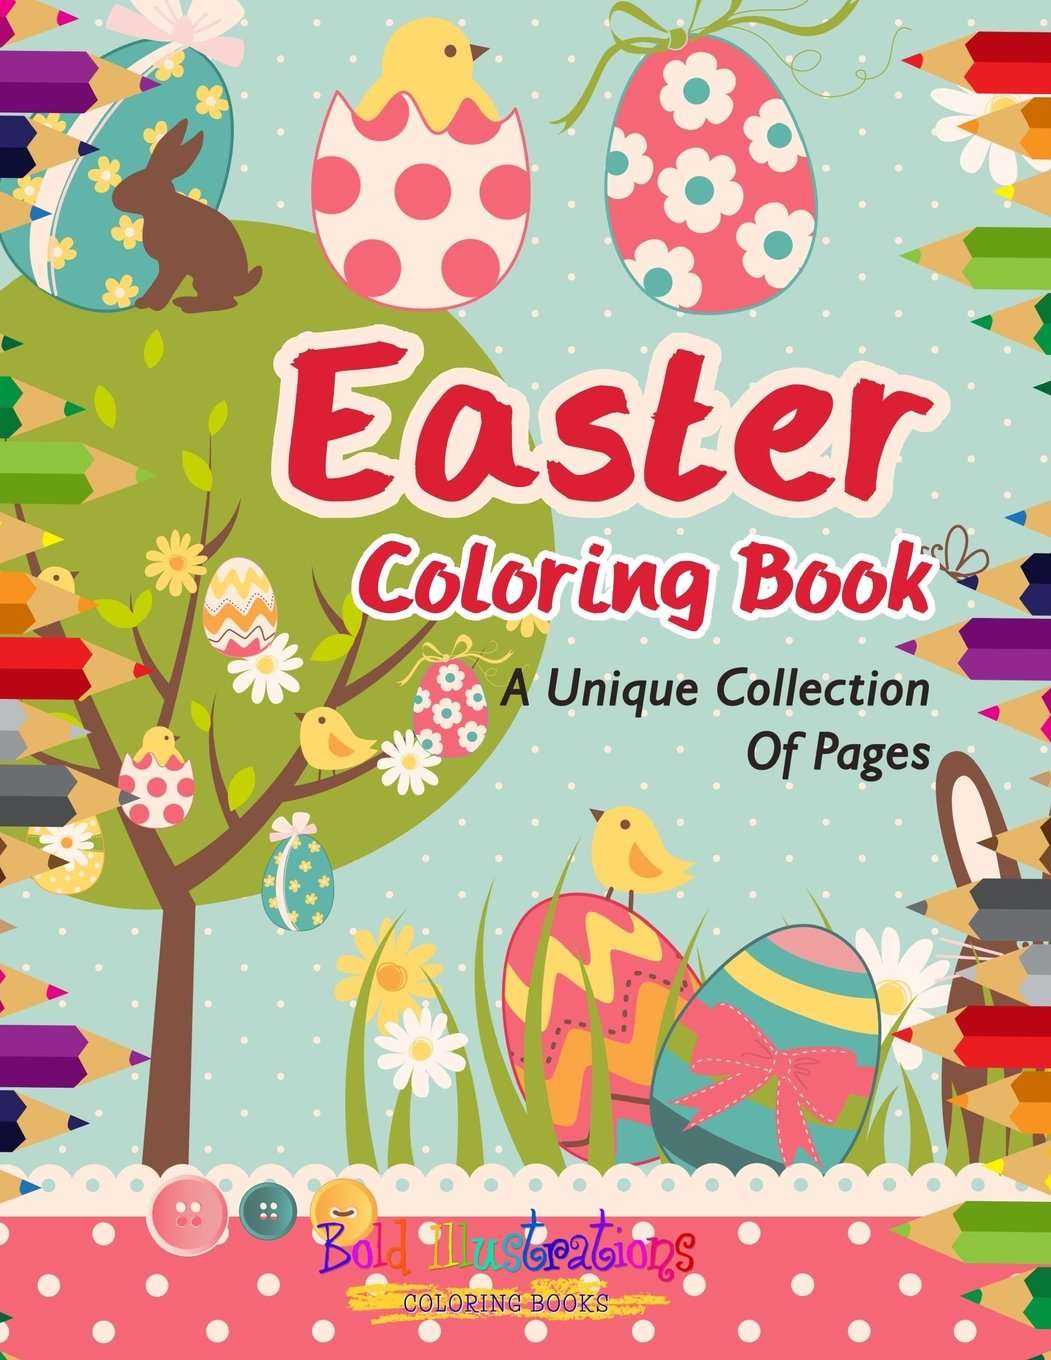 Easter Coloring Book A Unique Collection Of Pages Amazon Co Uk